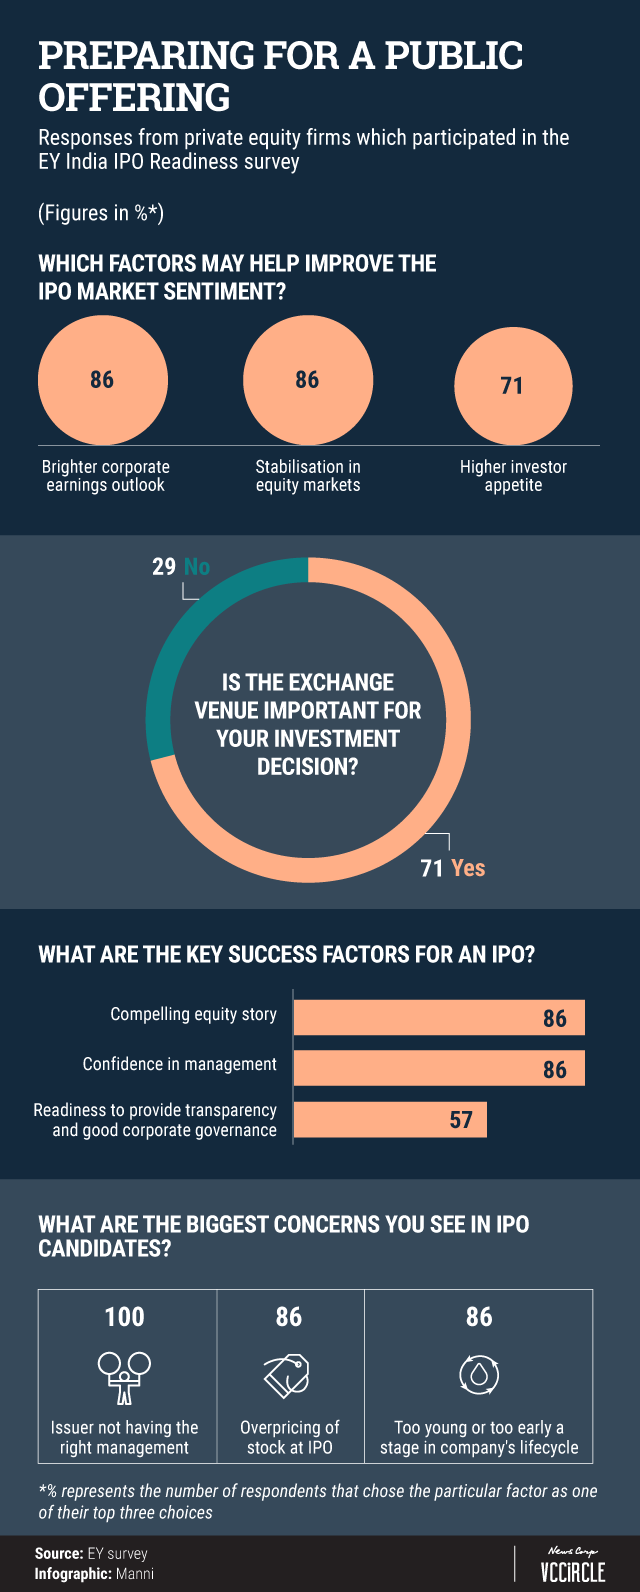 Here's what PE investors in India think about IPO market